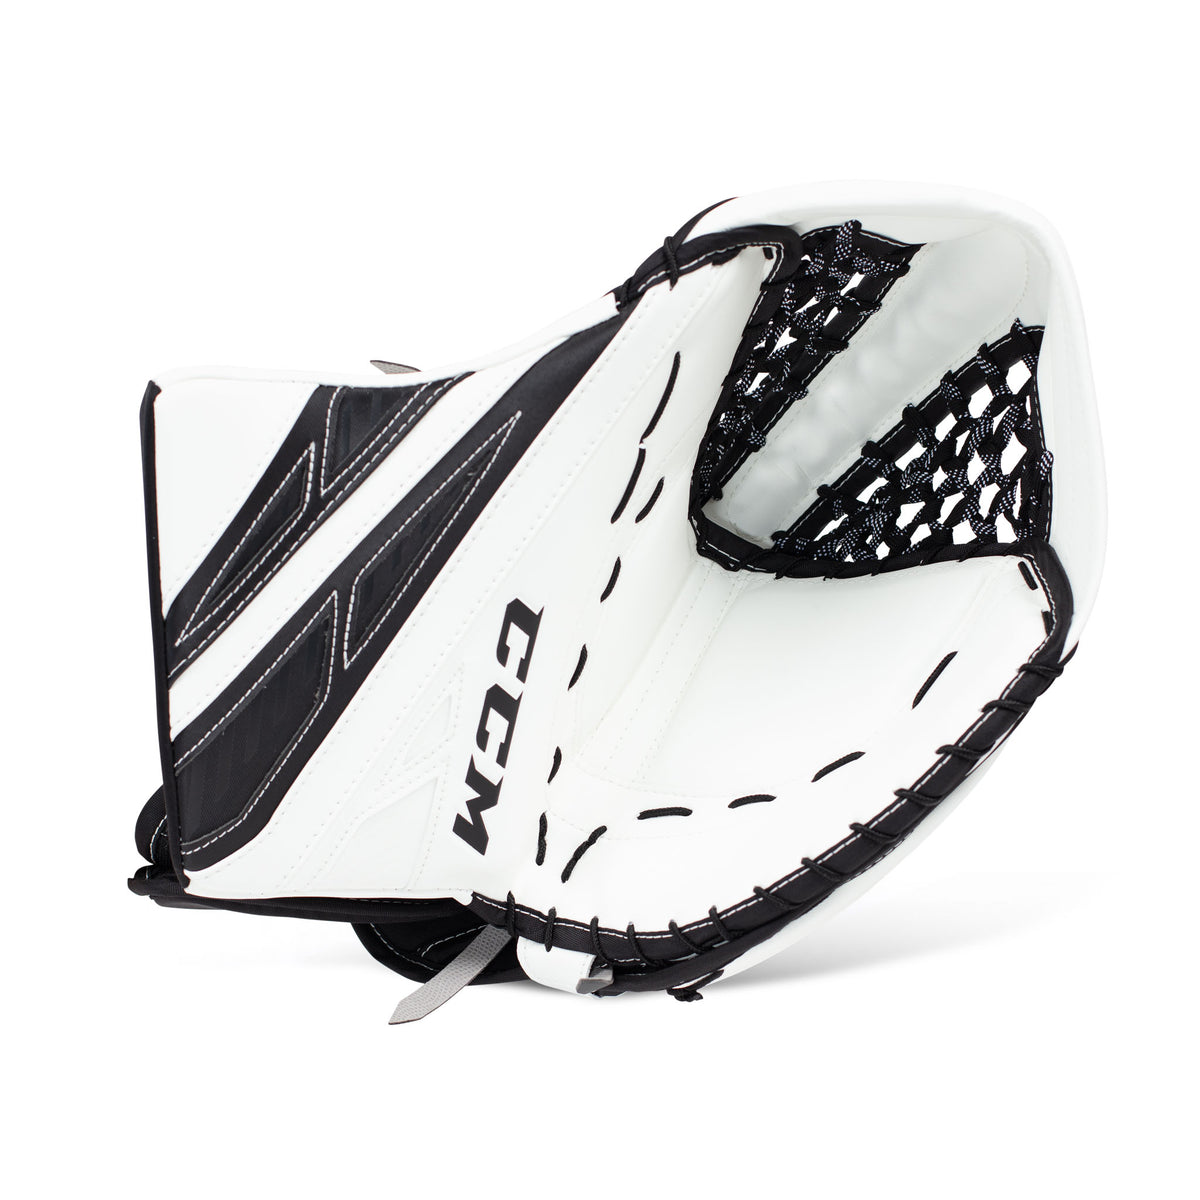 CCM Extreme Flex 4 Pro Senior Goalie Catcher - THS Spec